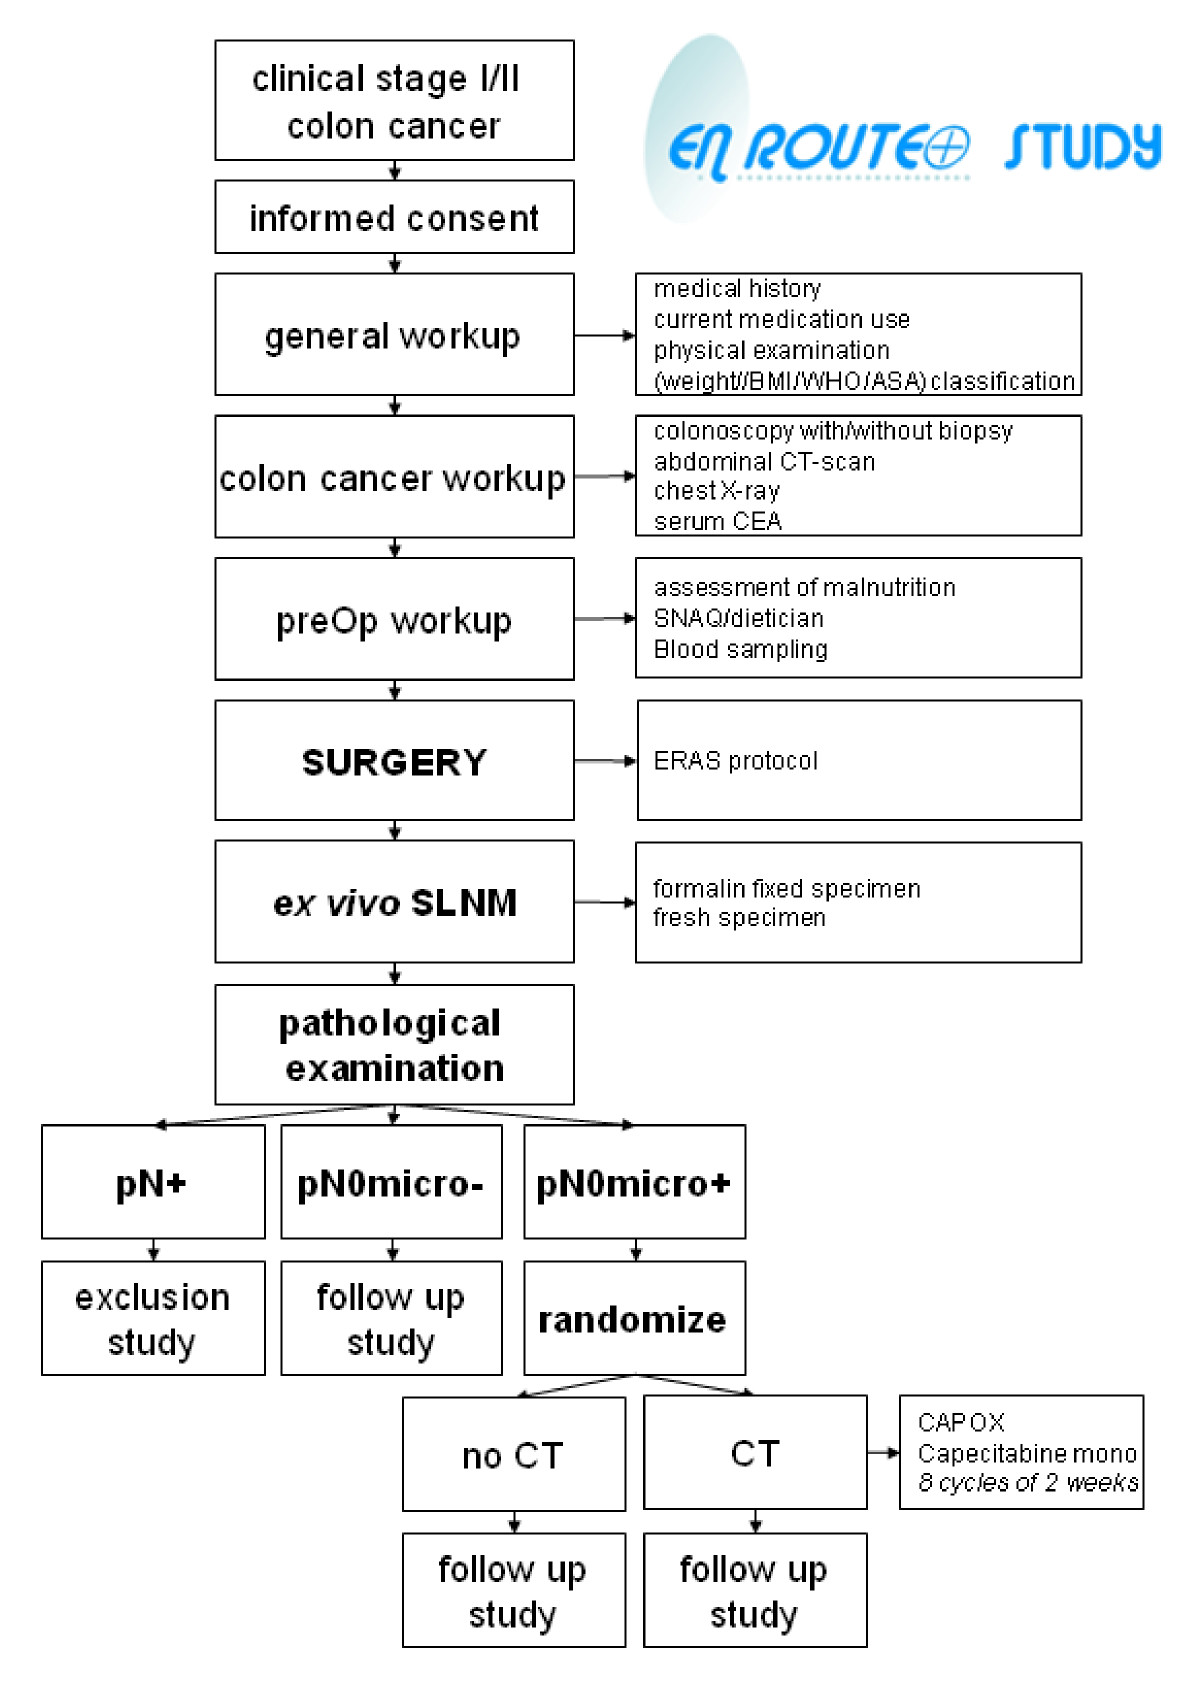 https://static-content.springer.com/image/art%3A10.1186%2F1471-2482-11-11/MediaObjects/12893_2010_Article_196_Fig2_HTML.jpg